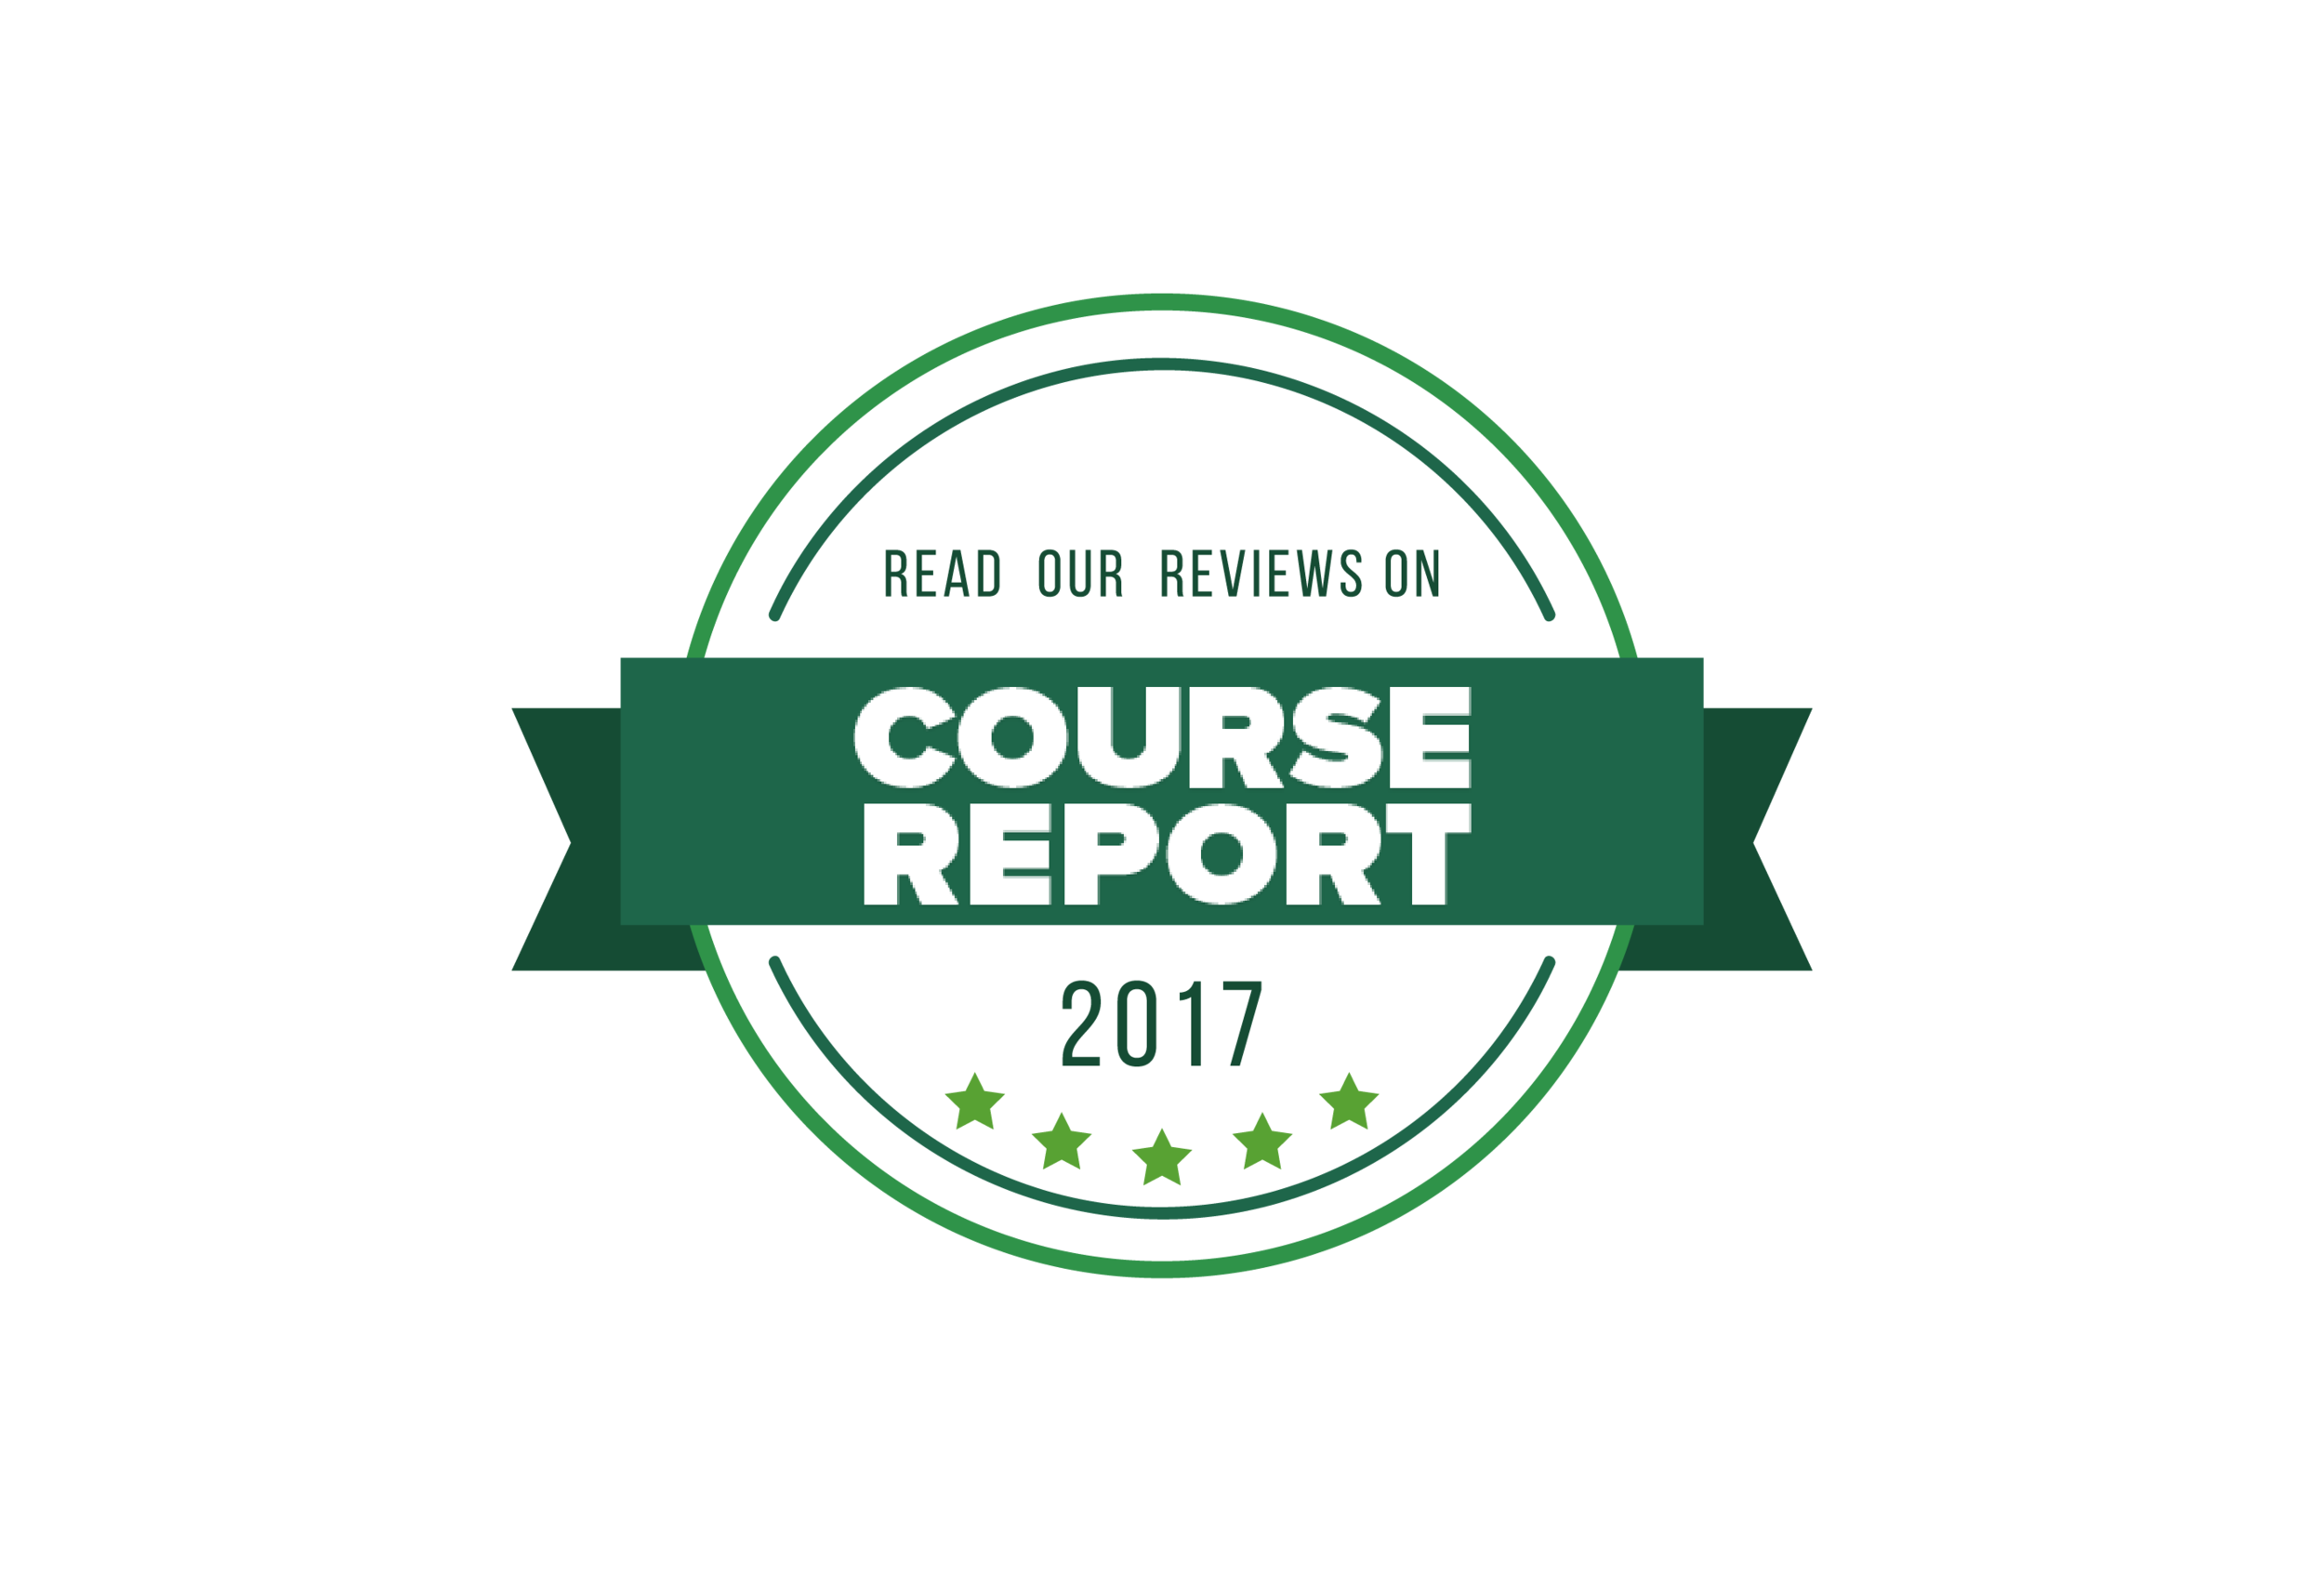 CourseReport_Badge_2017.png